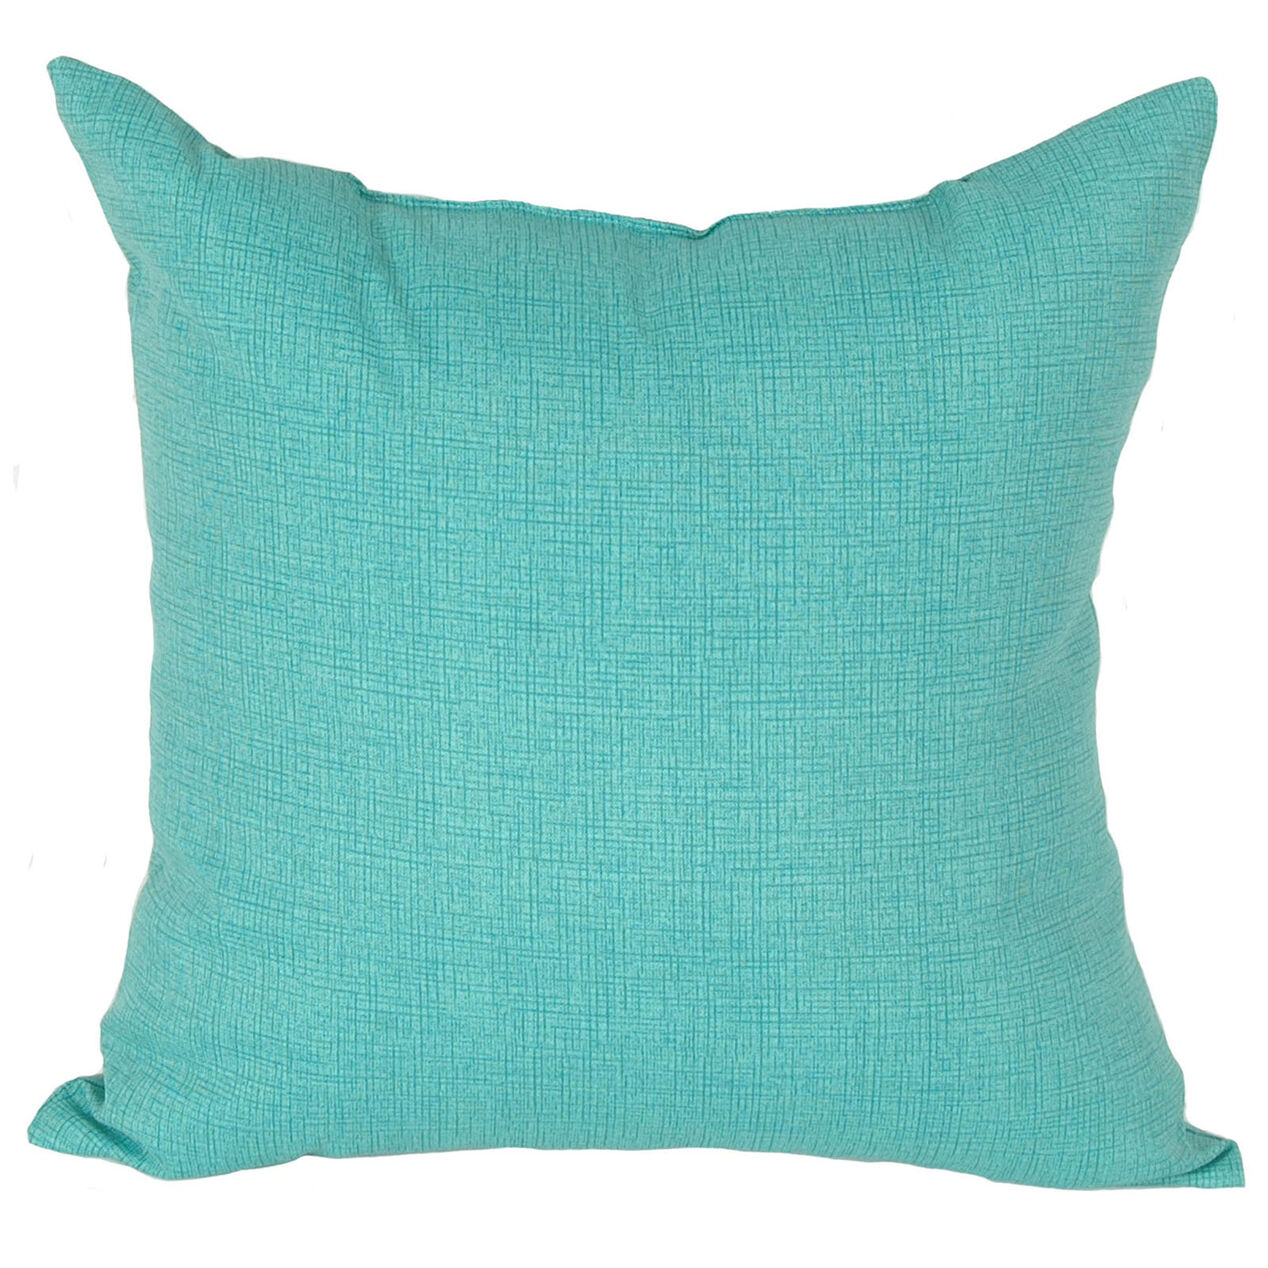 Replacement cushions for sofa seats - Picture Of Teal Peacock Square Outdoor Pillow